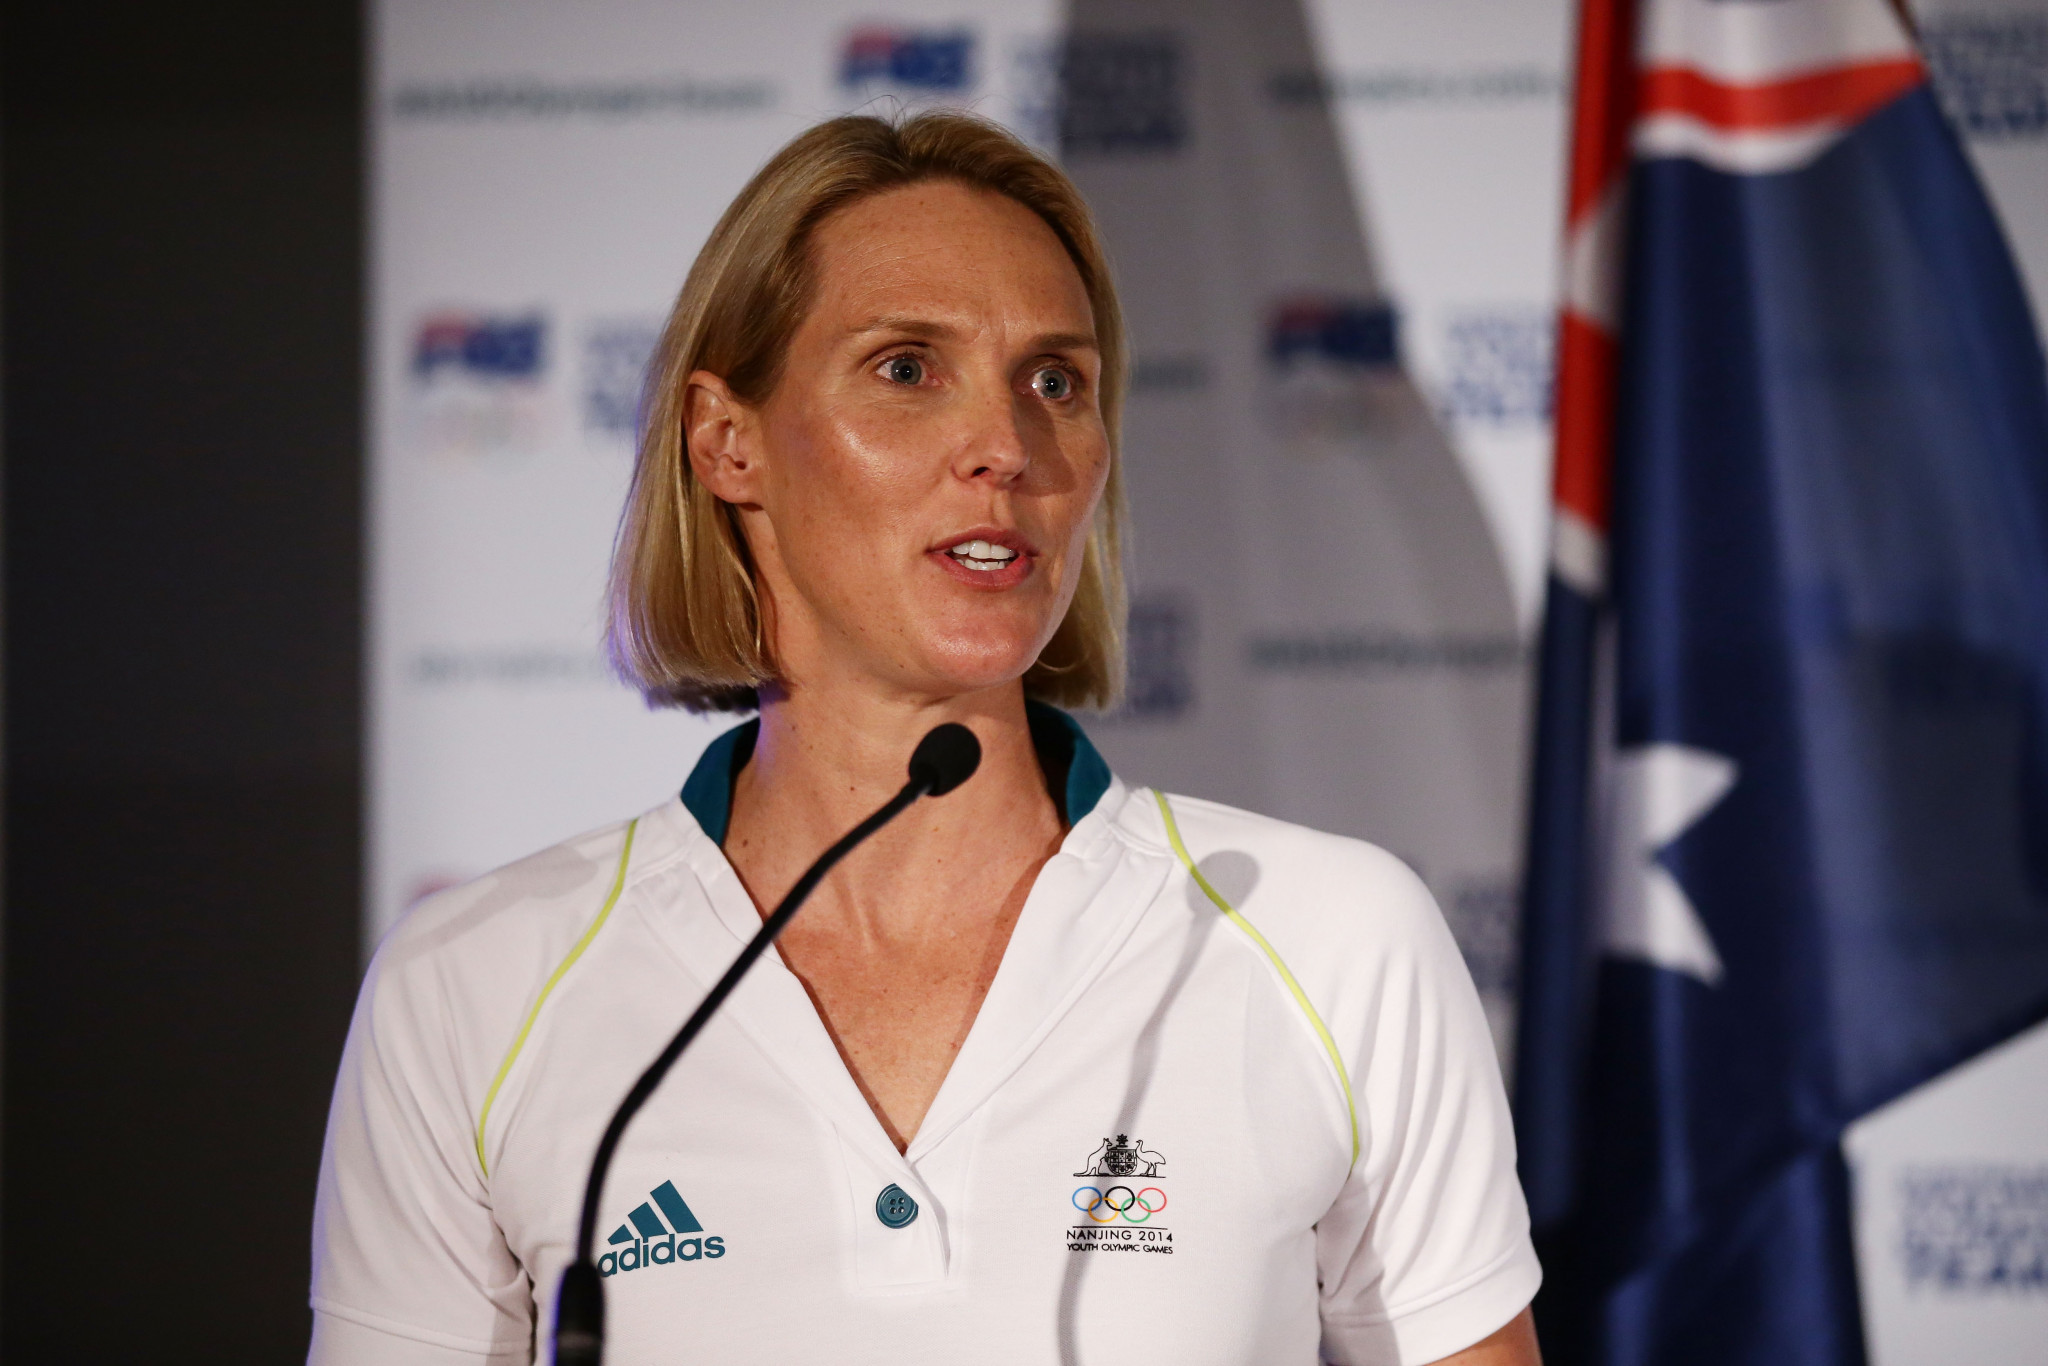 Eight-time Olympic medallist Susie O'Neill has been appointed Deputy Chef de Mission by Australia for Tokyo 2020 ©Getty Images